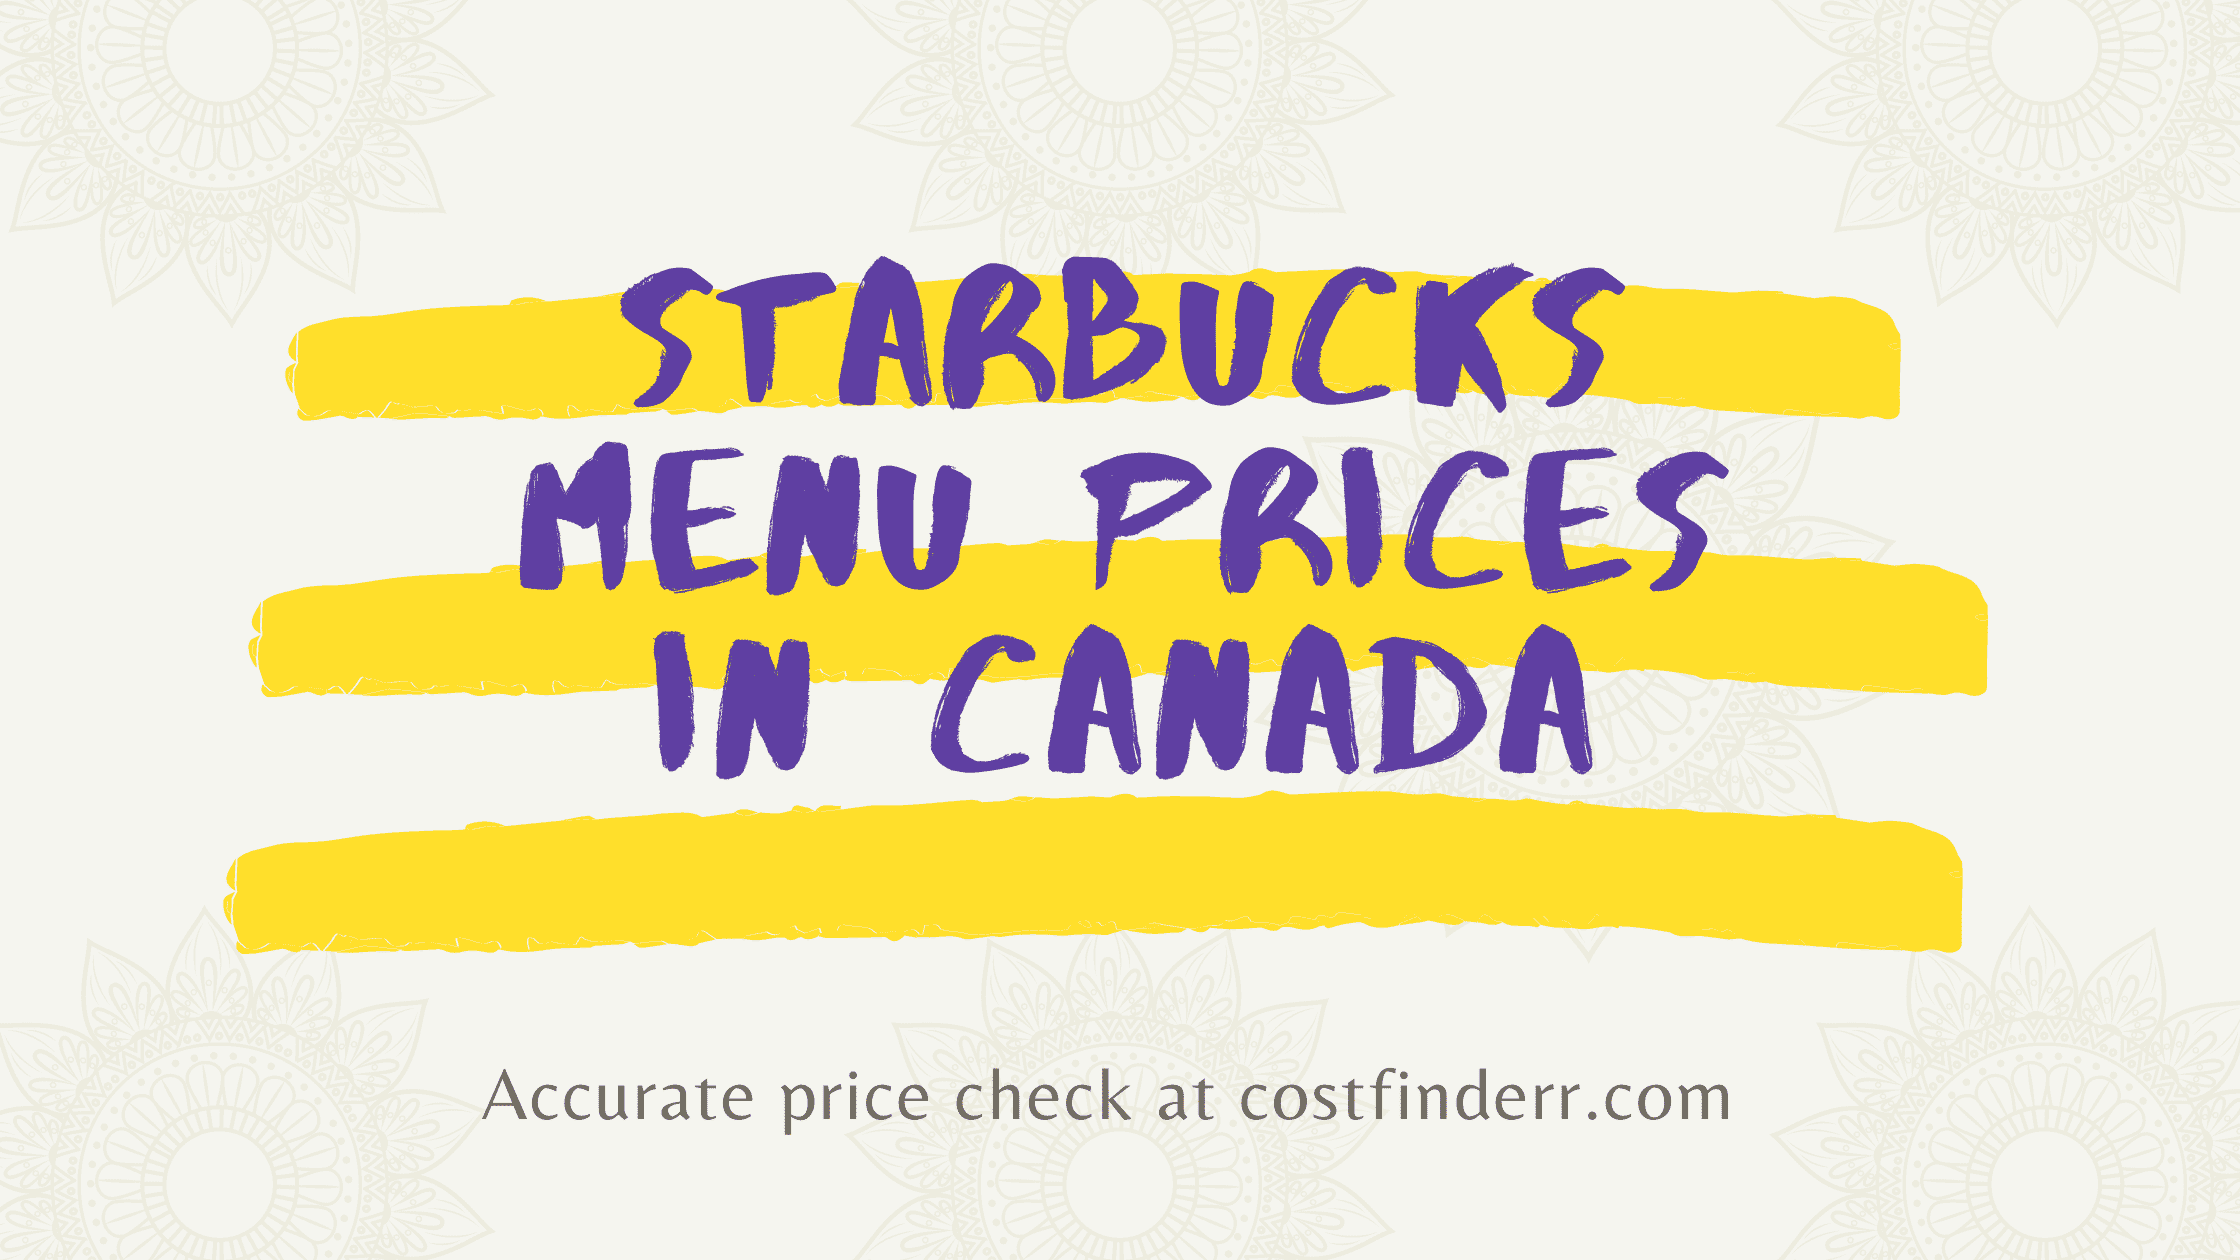 starbucks menu prices in canada